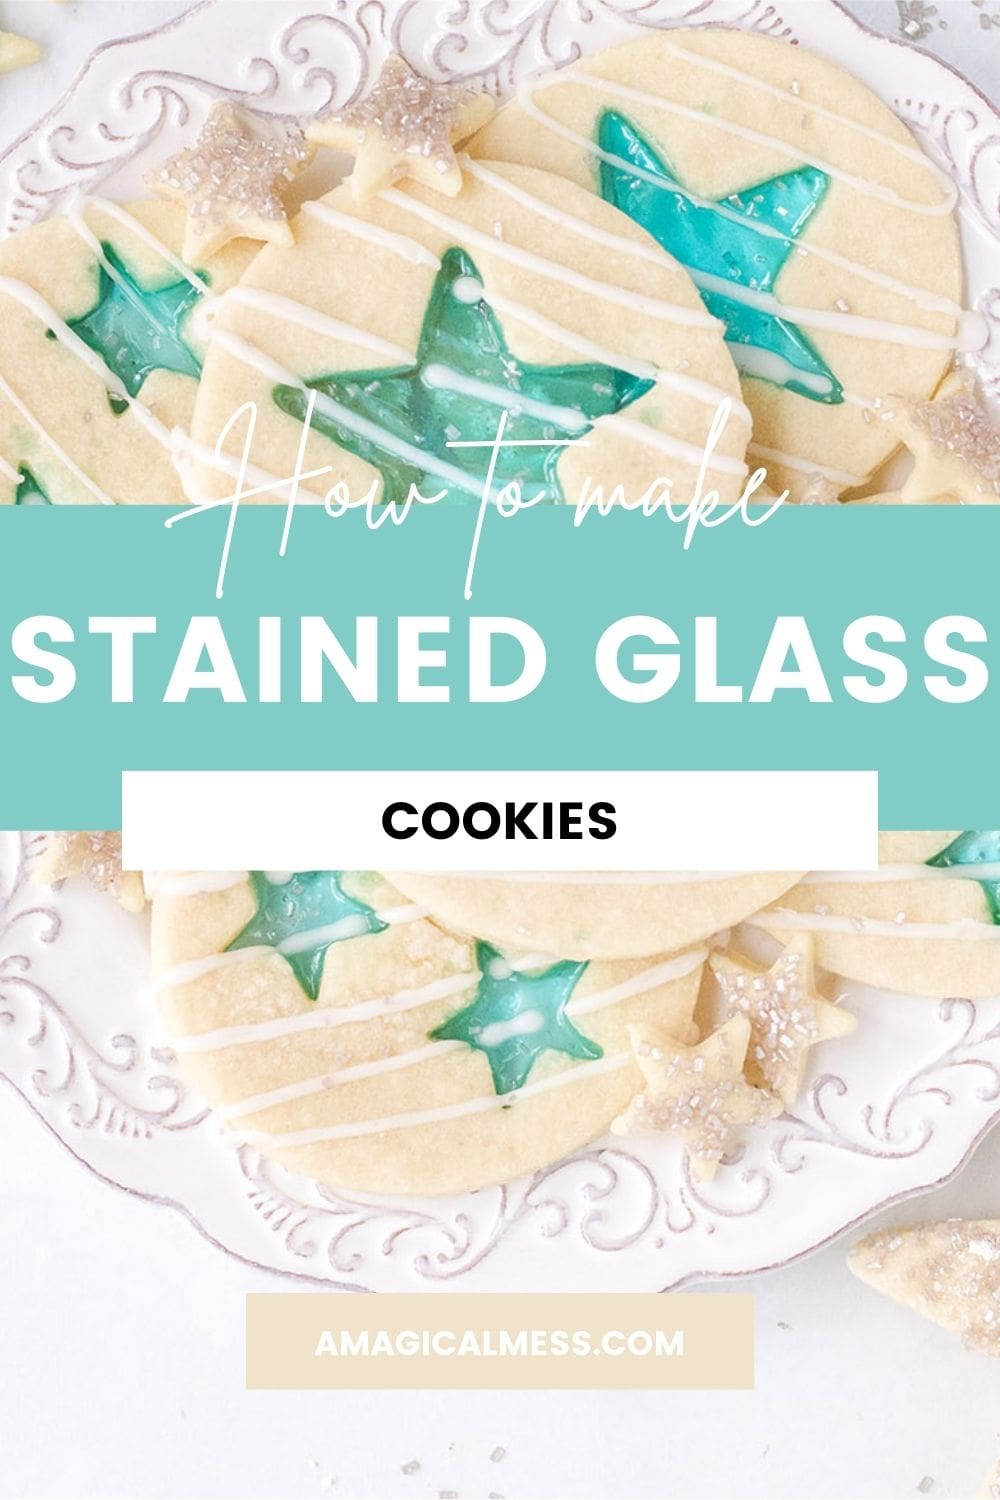 Blue star stained-glass cookies on a white plate